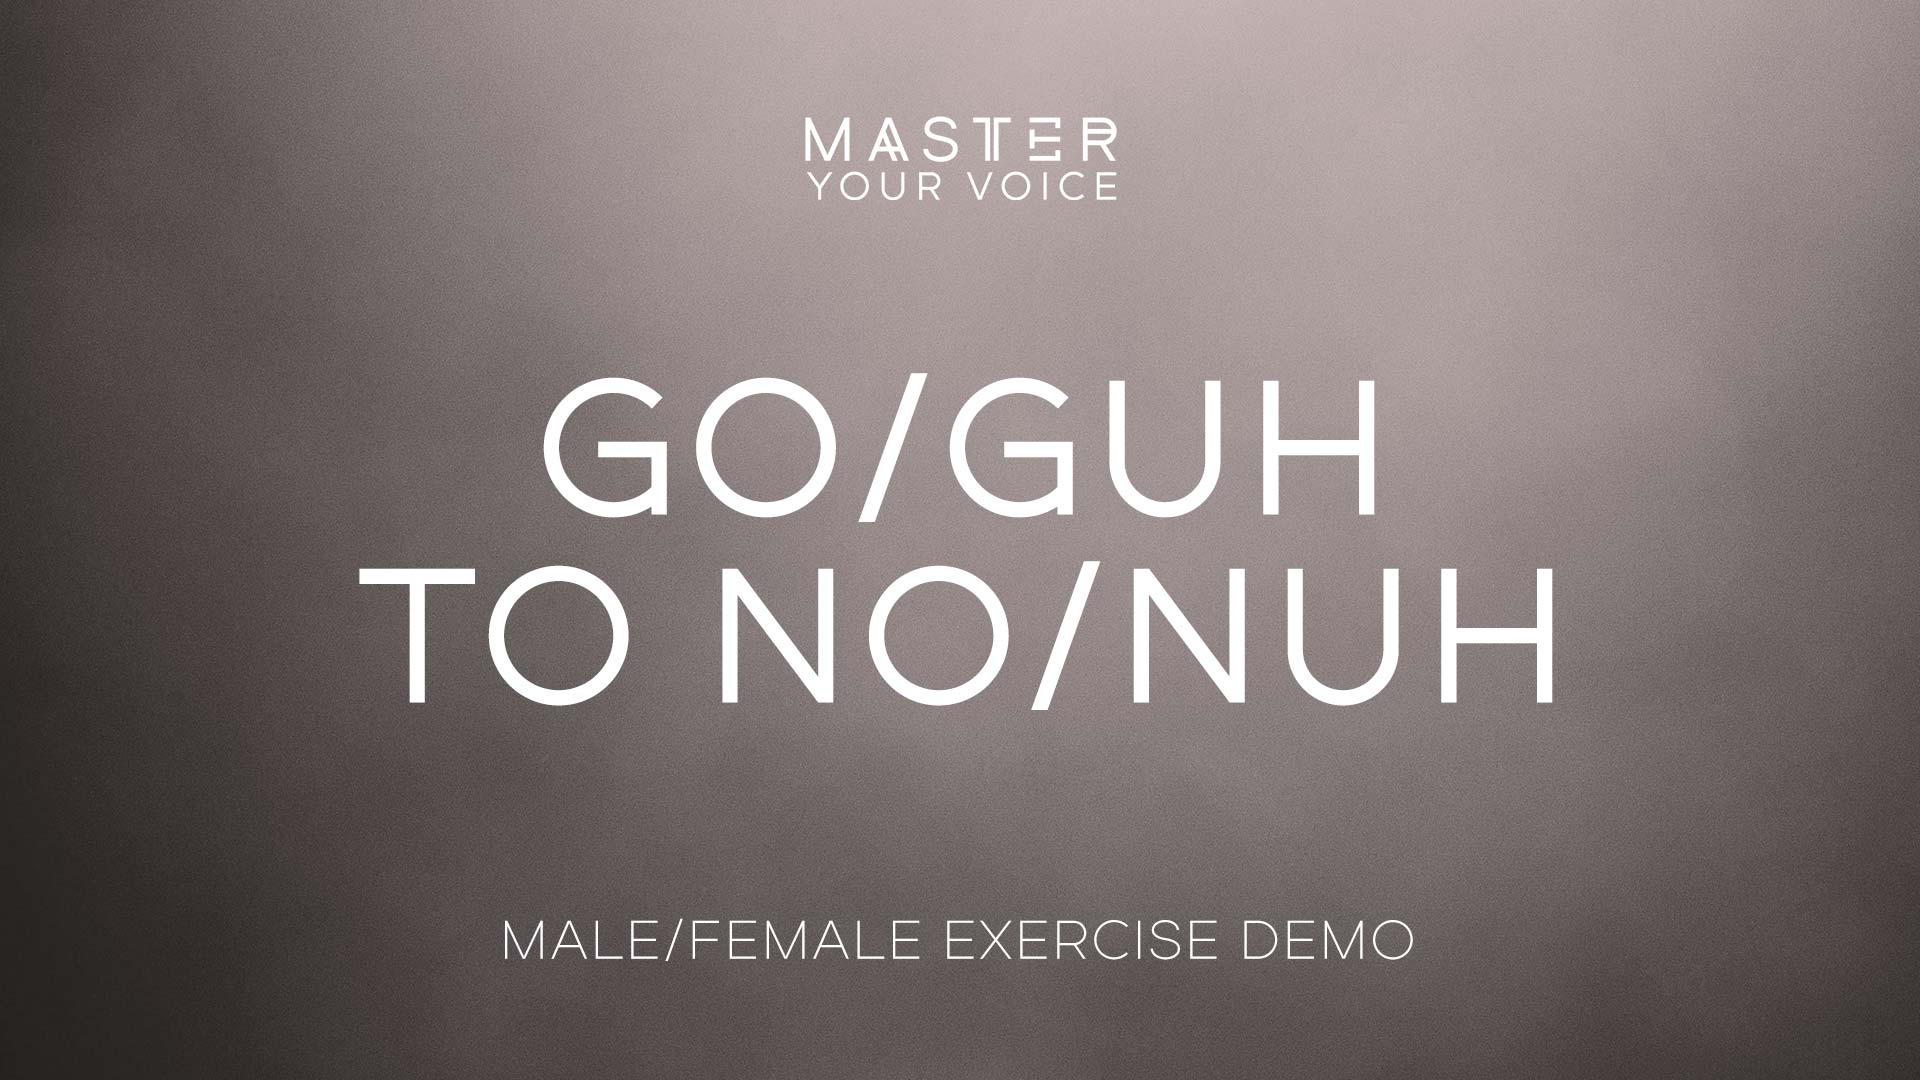 Go/Guh to No/Nuh Exercise Demo